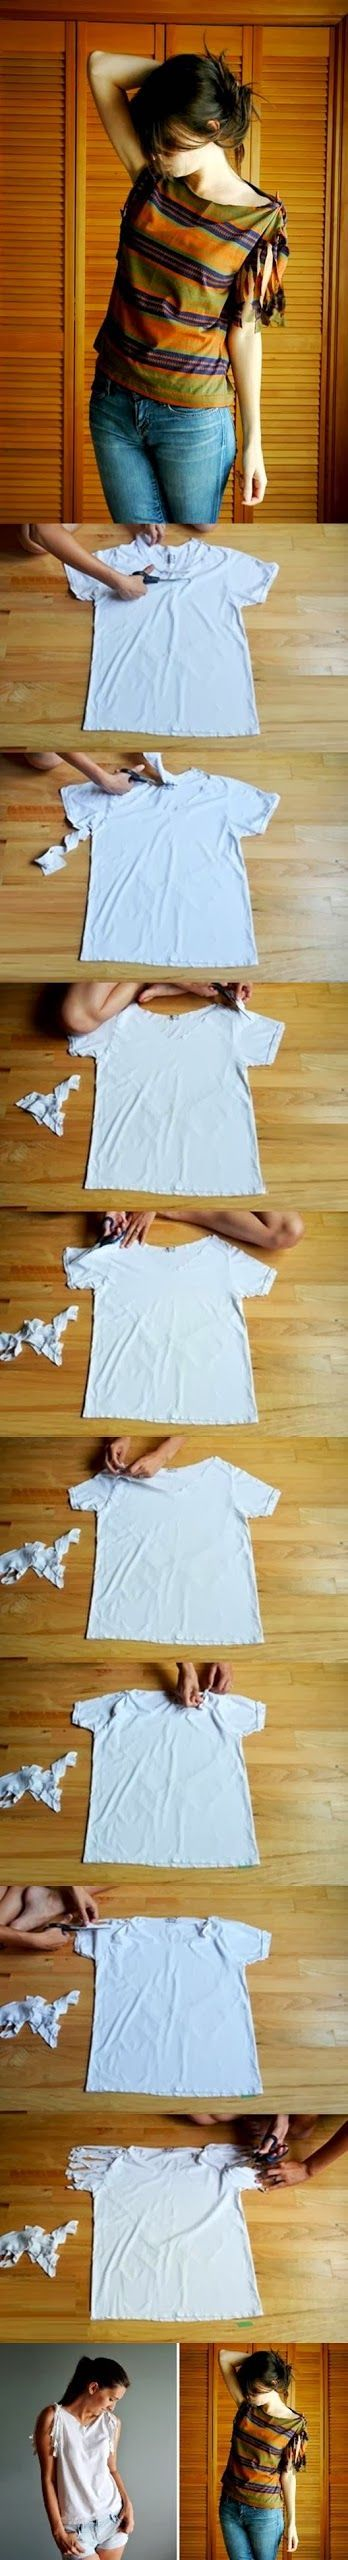 25+ best ideas about No sew shirts on Pinterest | No sew ...